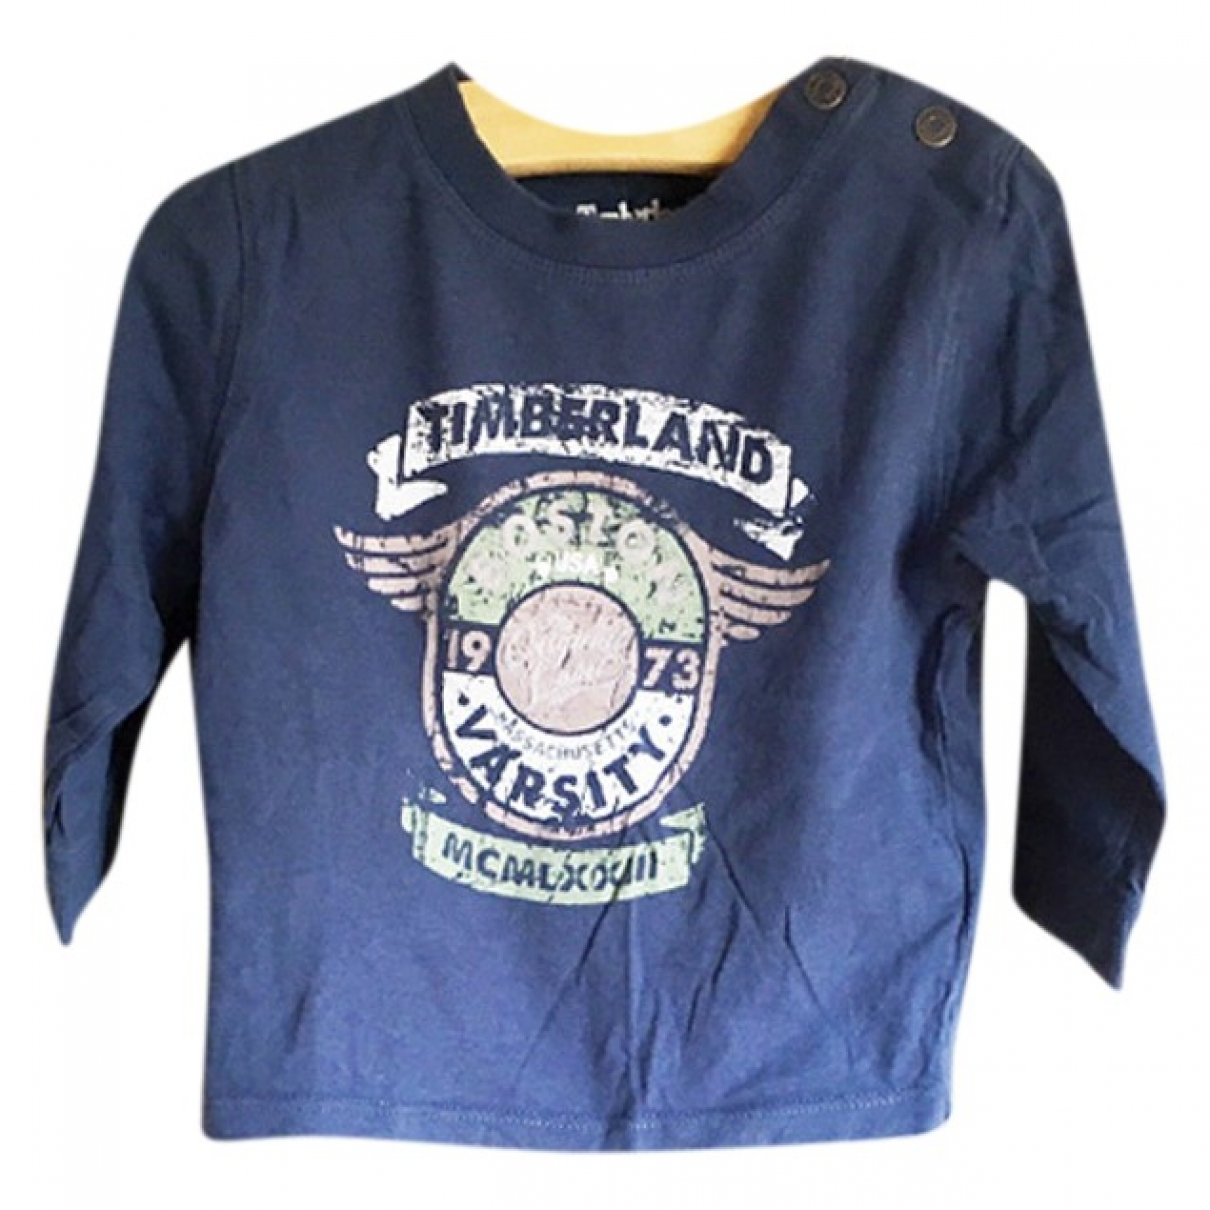 Timberland \N Navy Cotton Outfits for Kids 18 months - up to 81cm FR